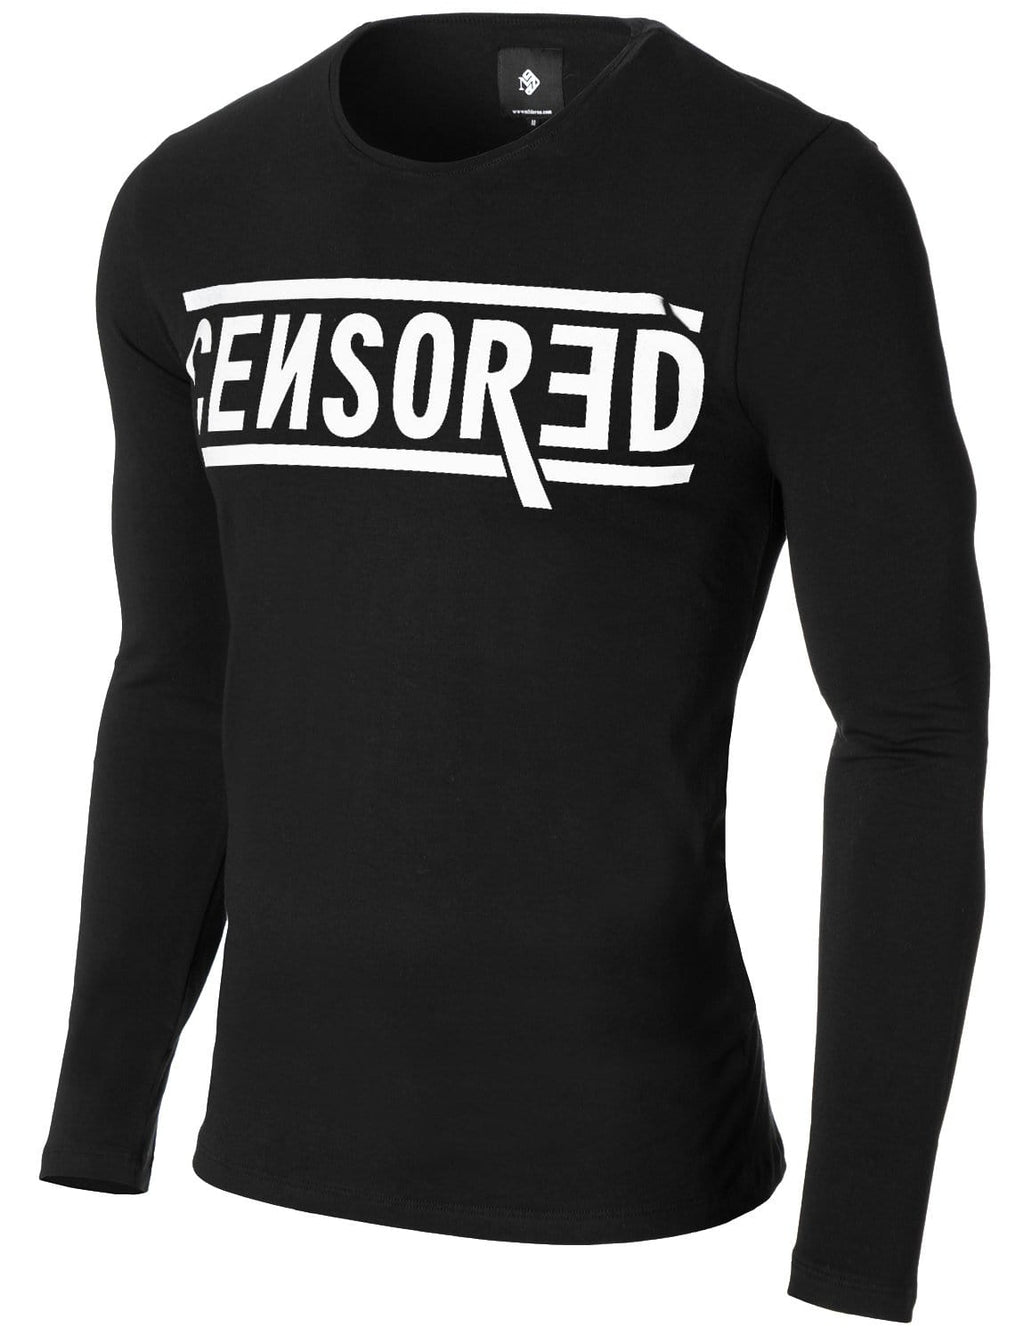 Mens Long Sleeve Censored Print T-shirt Black